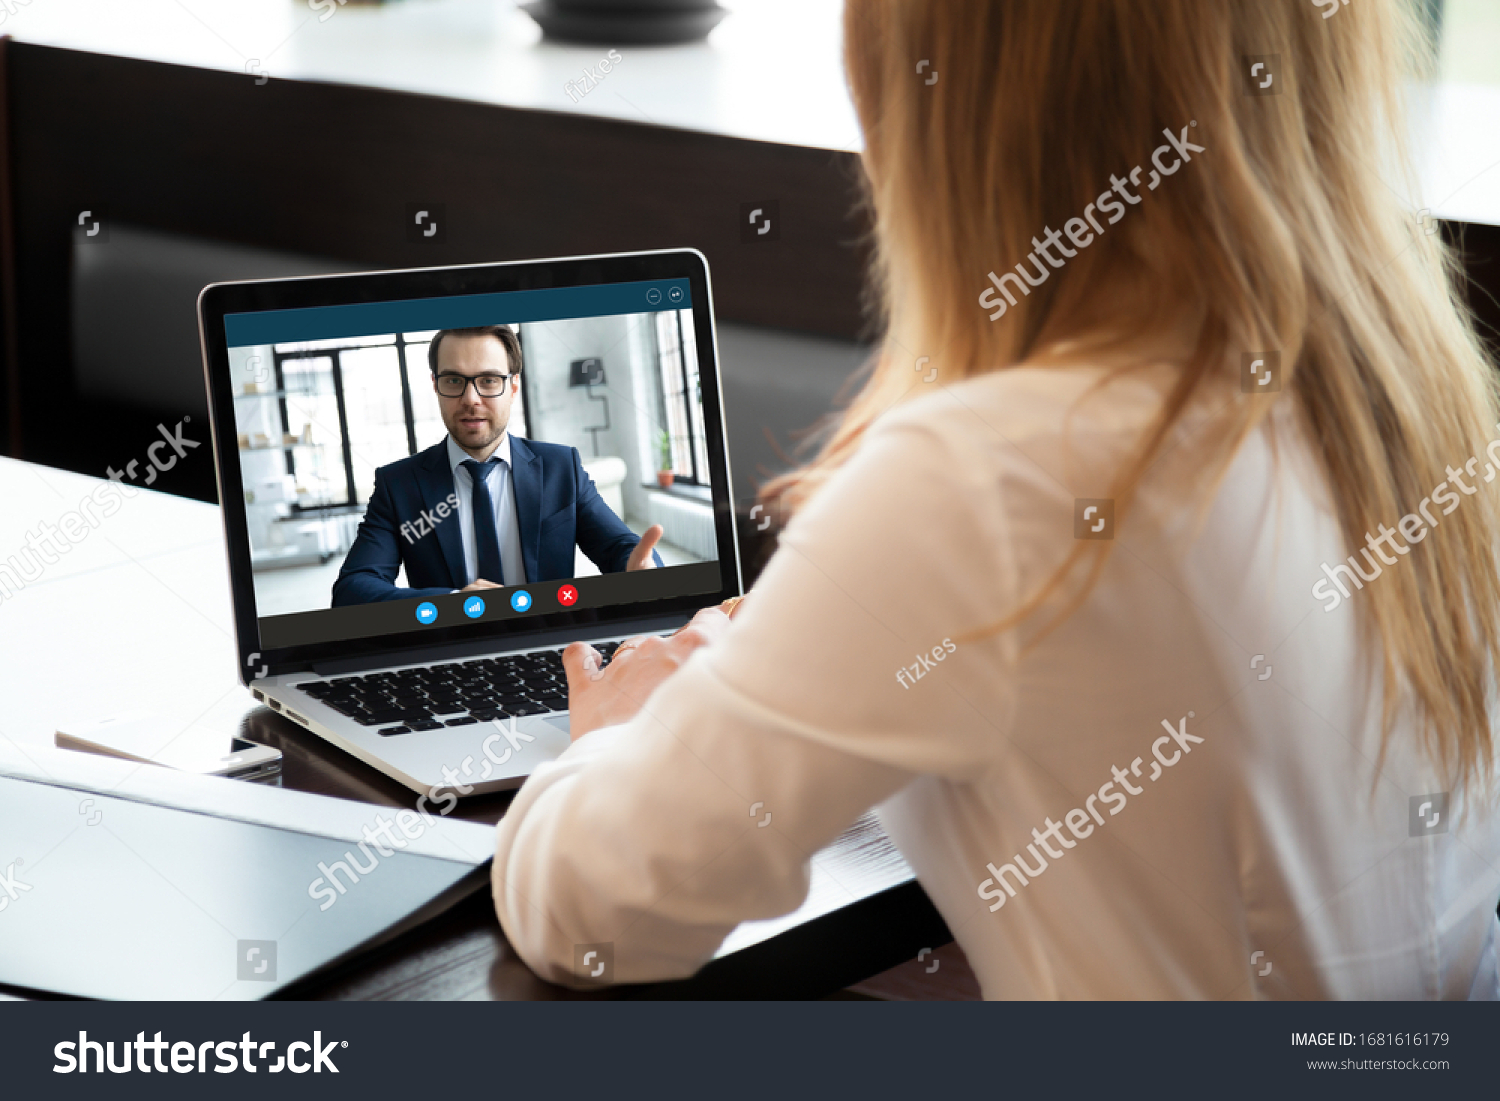 Back view of young businesswoman talk with male business partner using video call on modern laptop, female employee speak consult with businessman on webcam conference, online consultation concept #1681616179